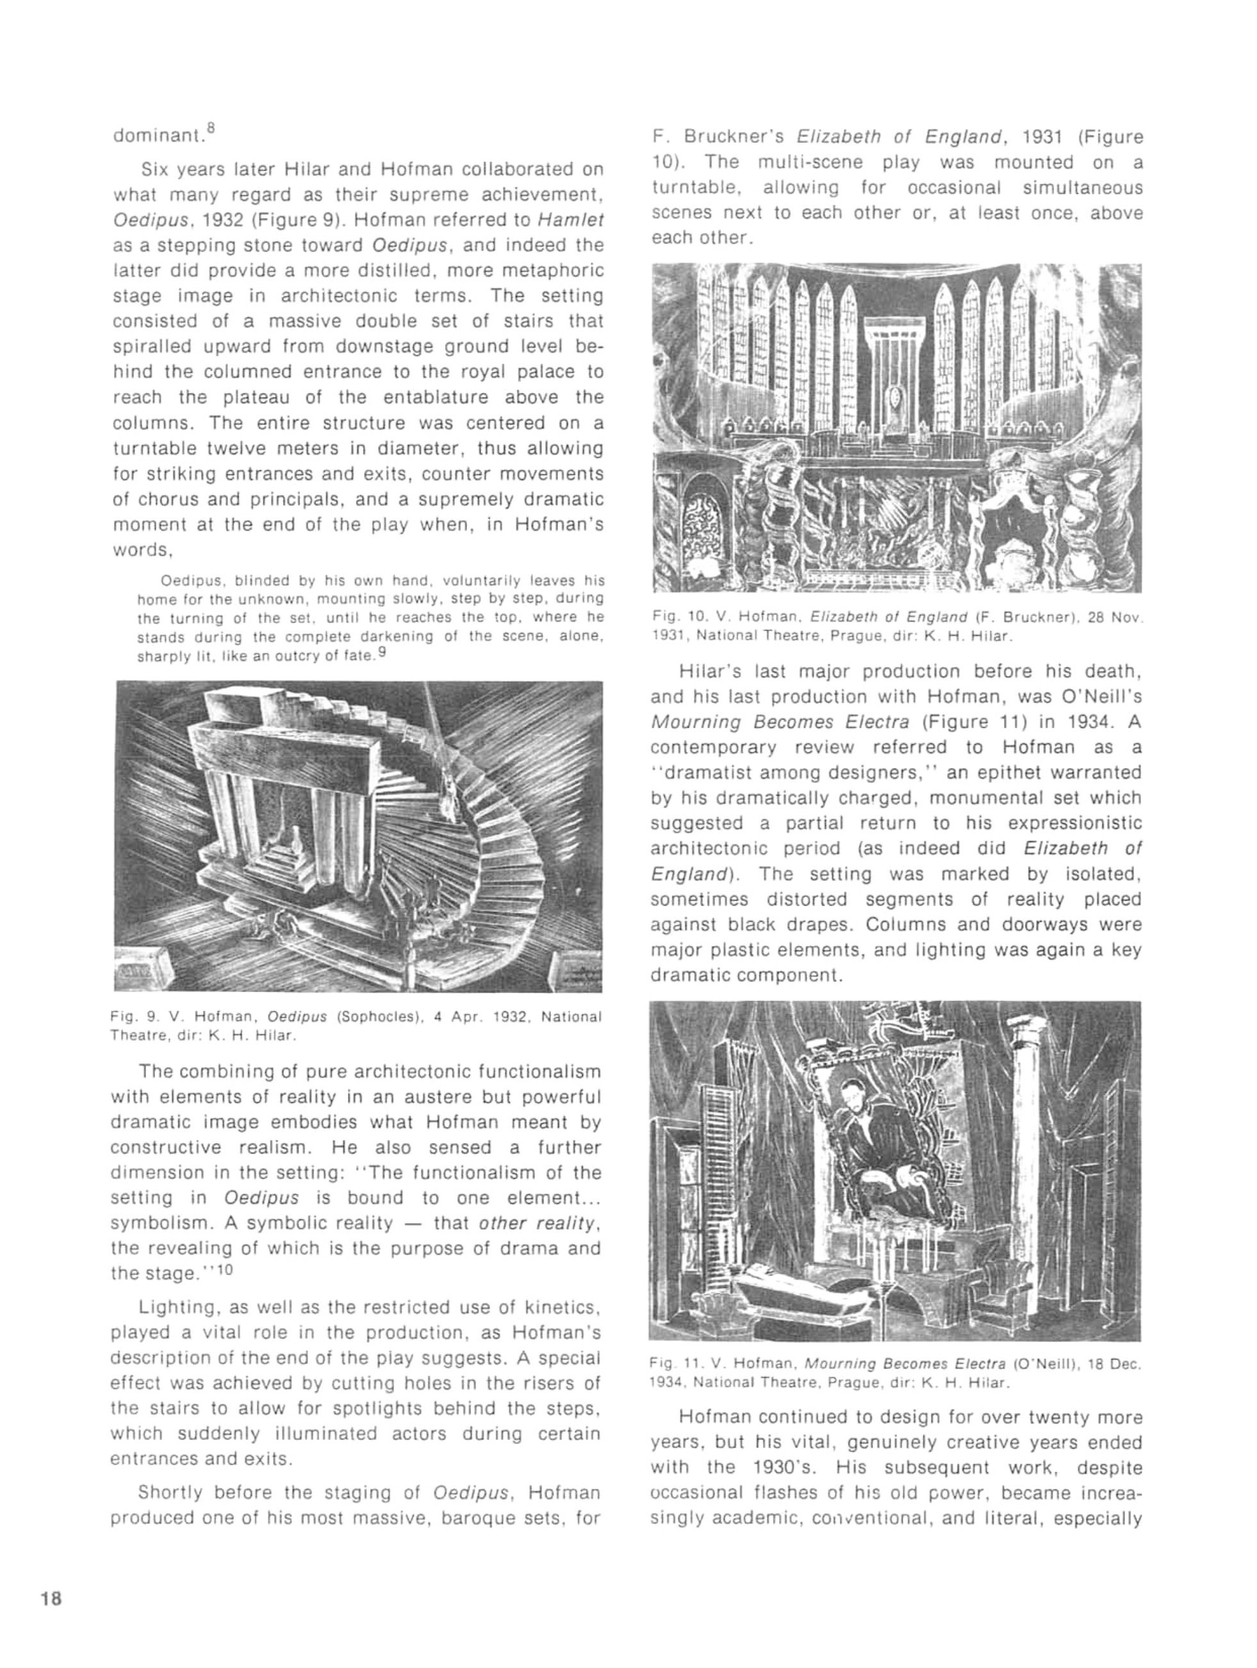 Theatre Design & Technology - Summer 1975 on old spanish design, old french design, old leather design, old games design, old english design, old world design, old interior design, old hospital design, old hawaii design, old factory design, old home design, old church design, old tavern design, old hollywood design, arsenic and old lace set design, old german design, old restaurant design, old fire station design, old library design, old athletics design,